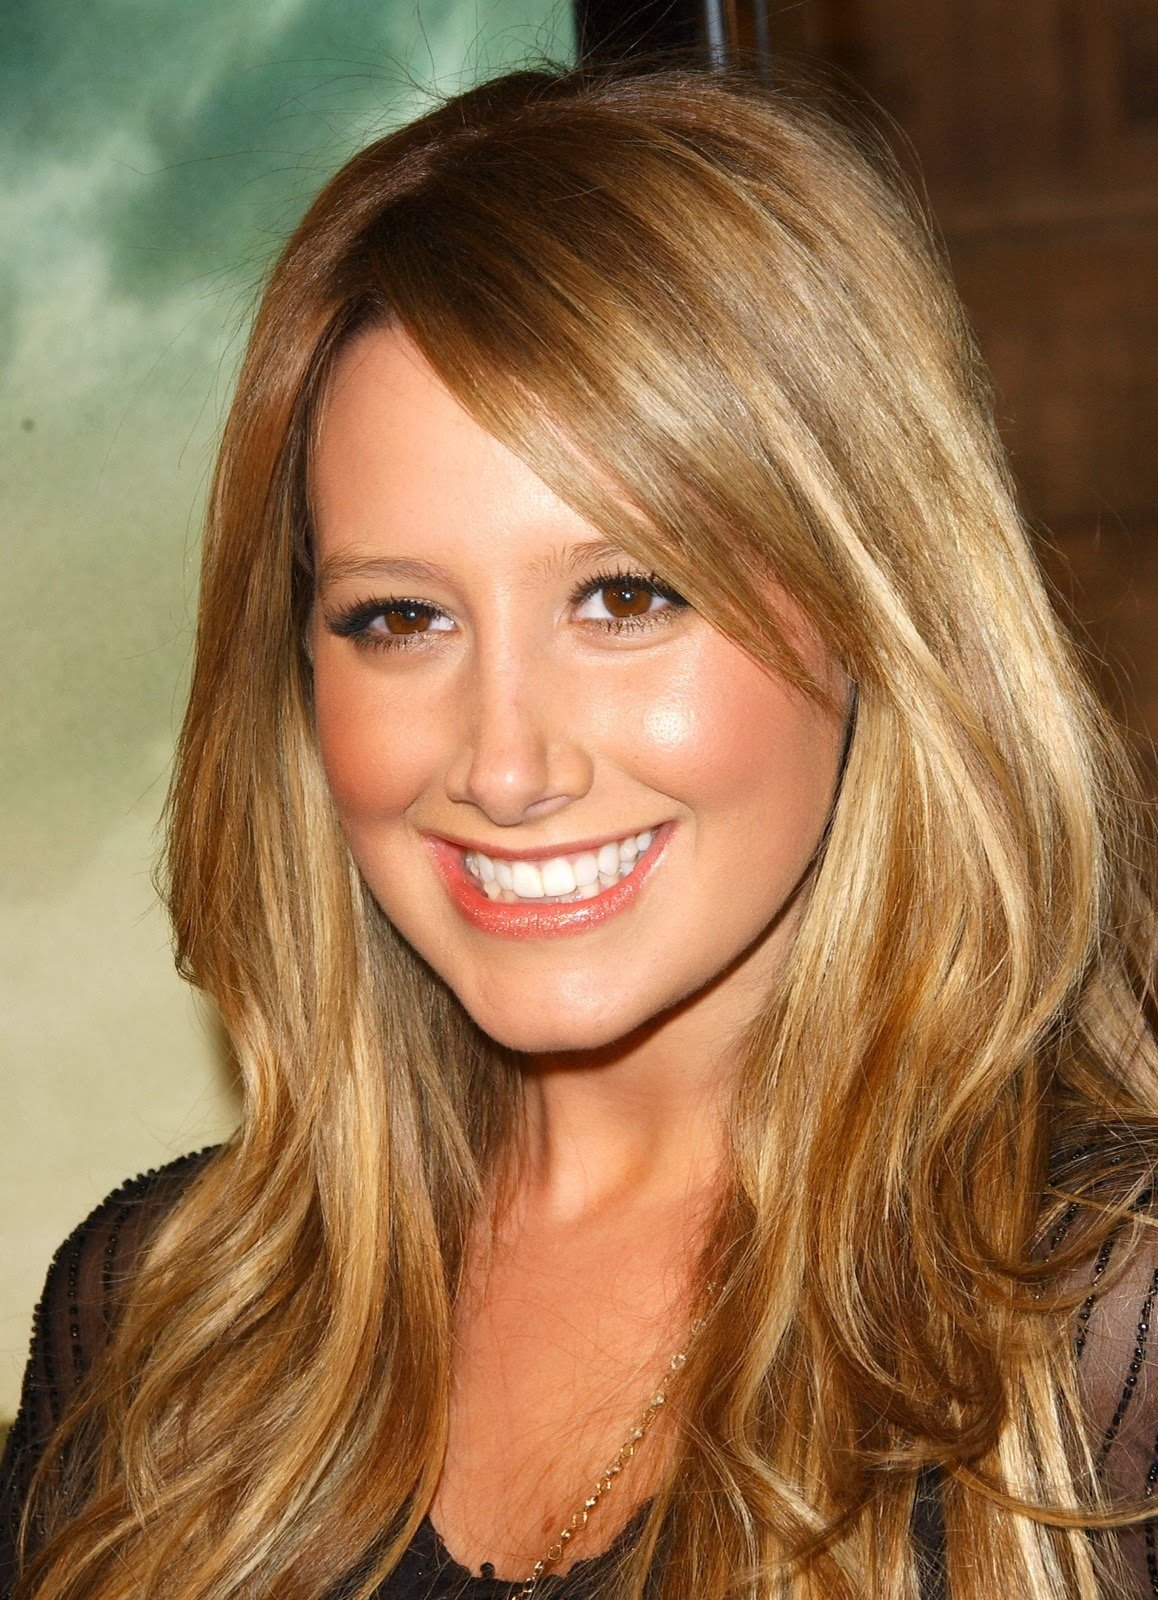 The Best Hairstyles For Long Hair Female Hair Fashion Style Pictures